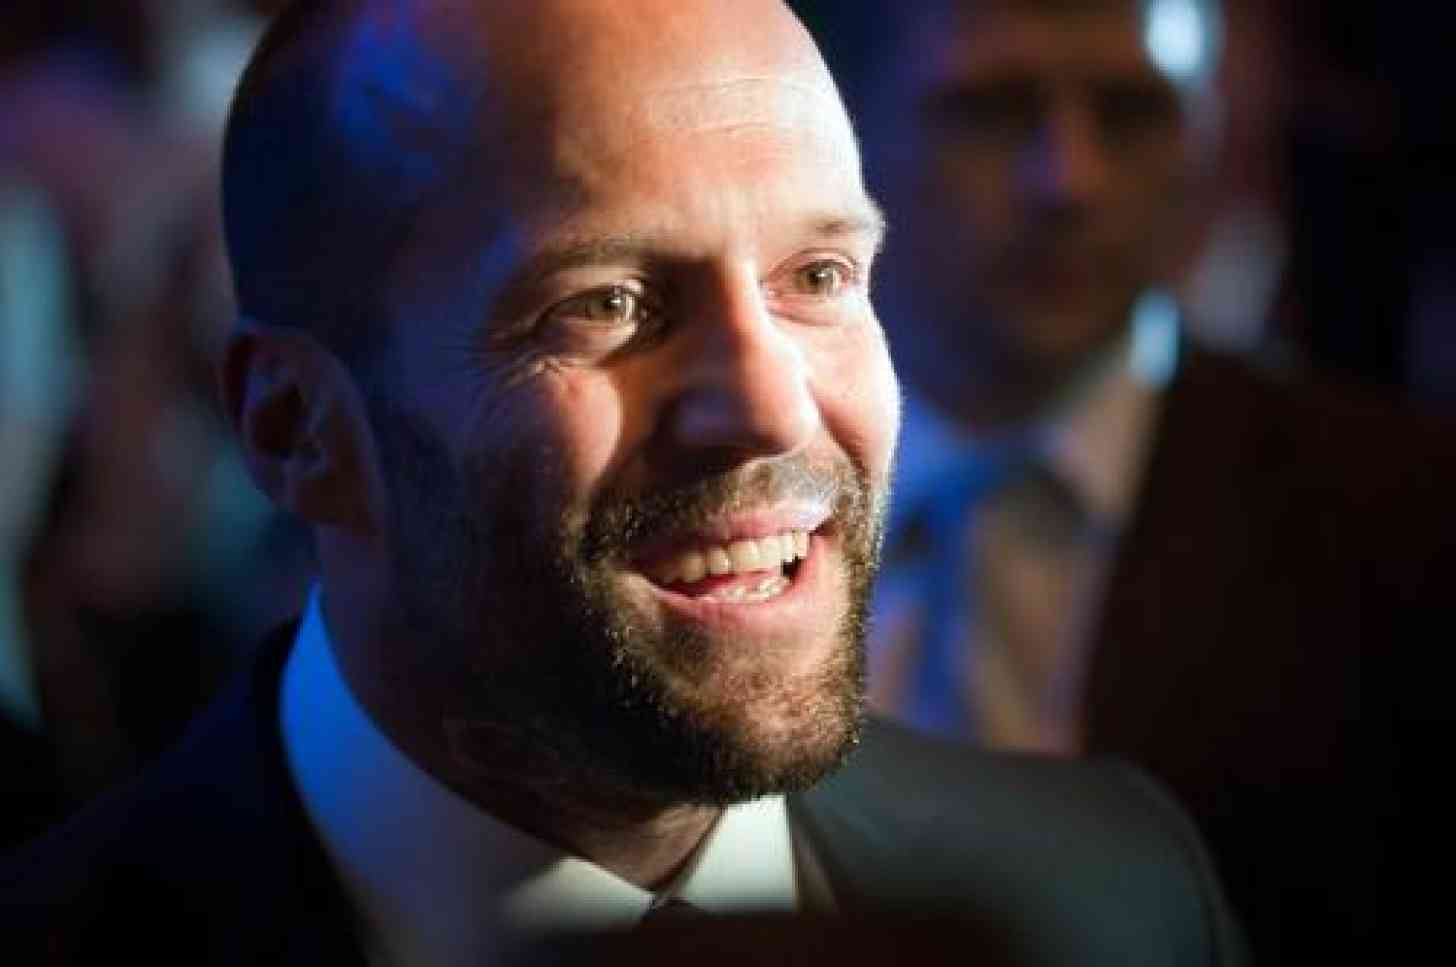 New LG G5 ad features Jason Statham, lots of Jason Statham